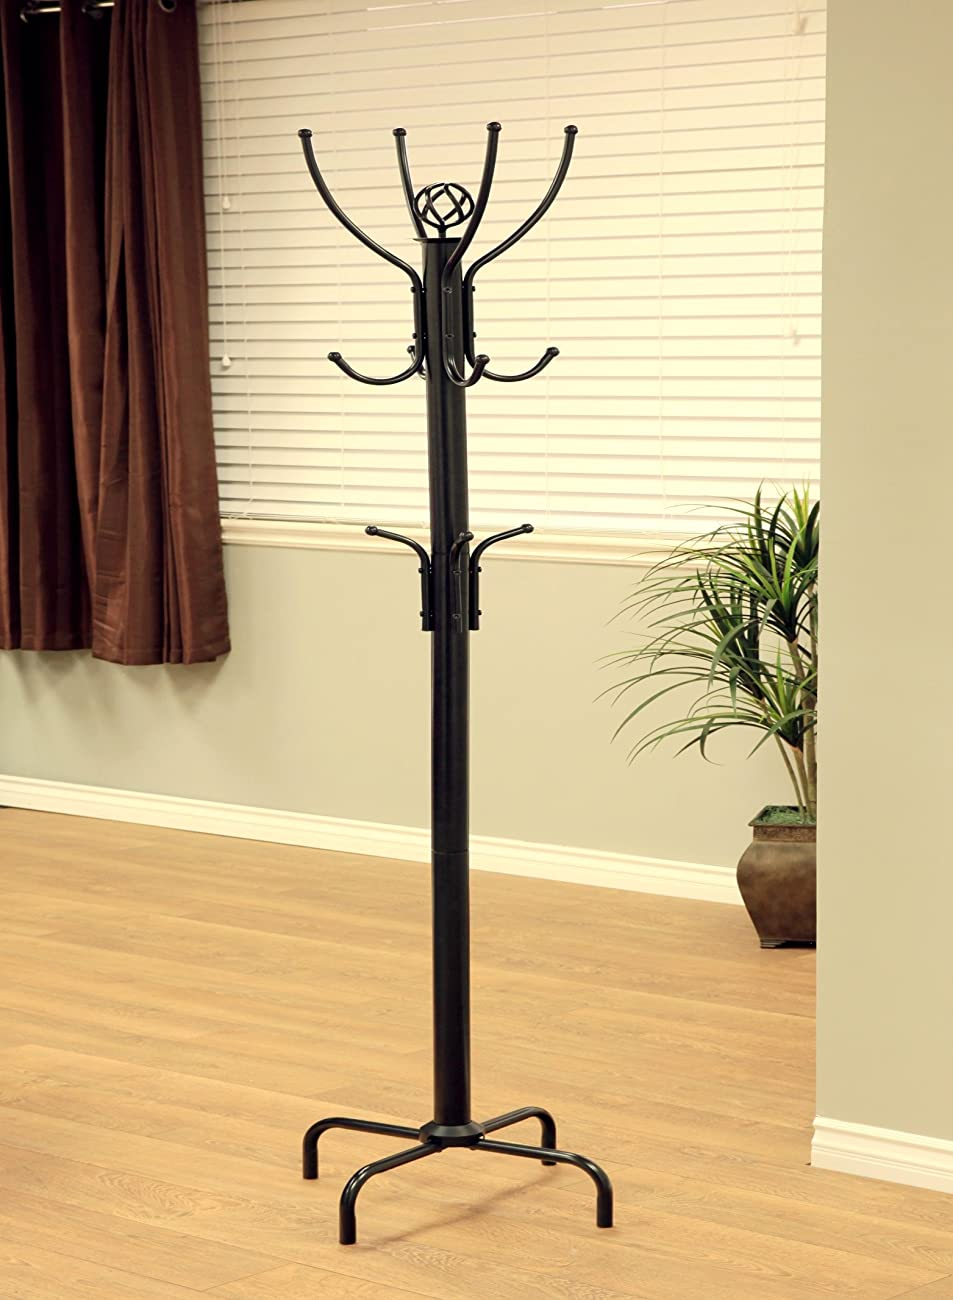 Frenchi Furniture Black Metal Coat Rack, 12 Hooks 1